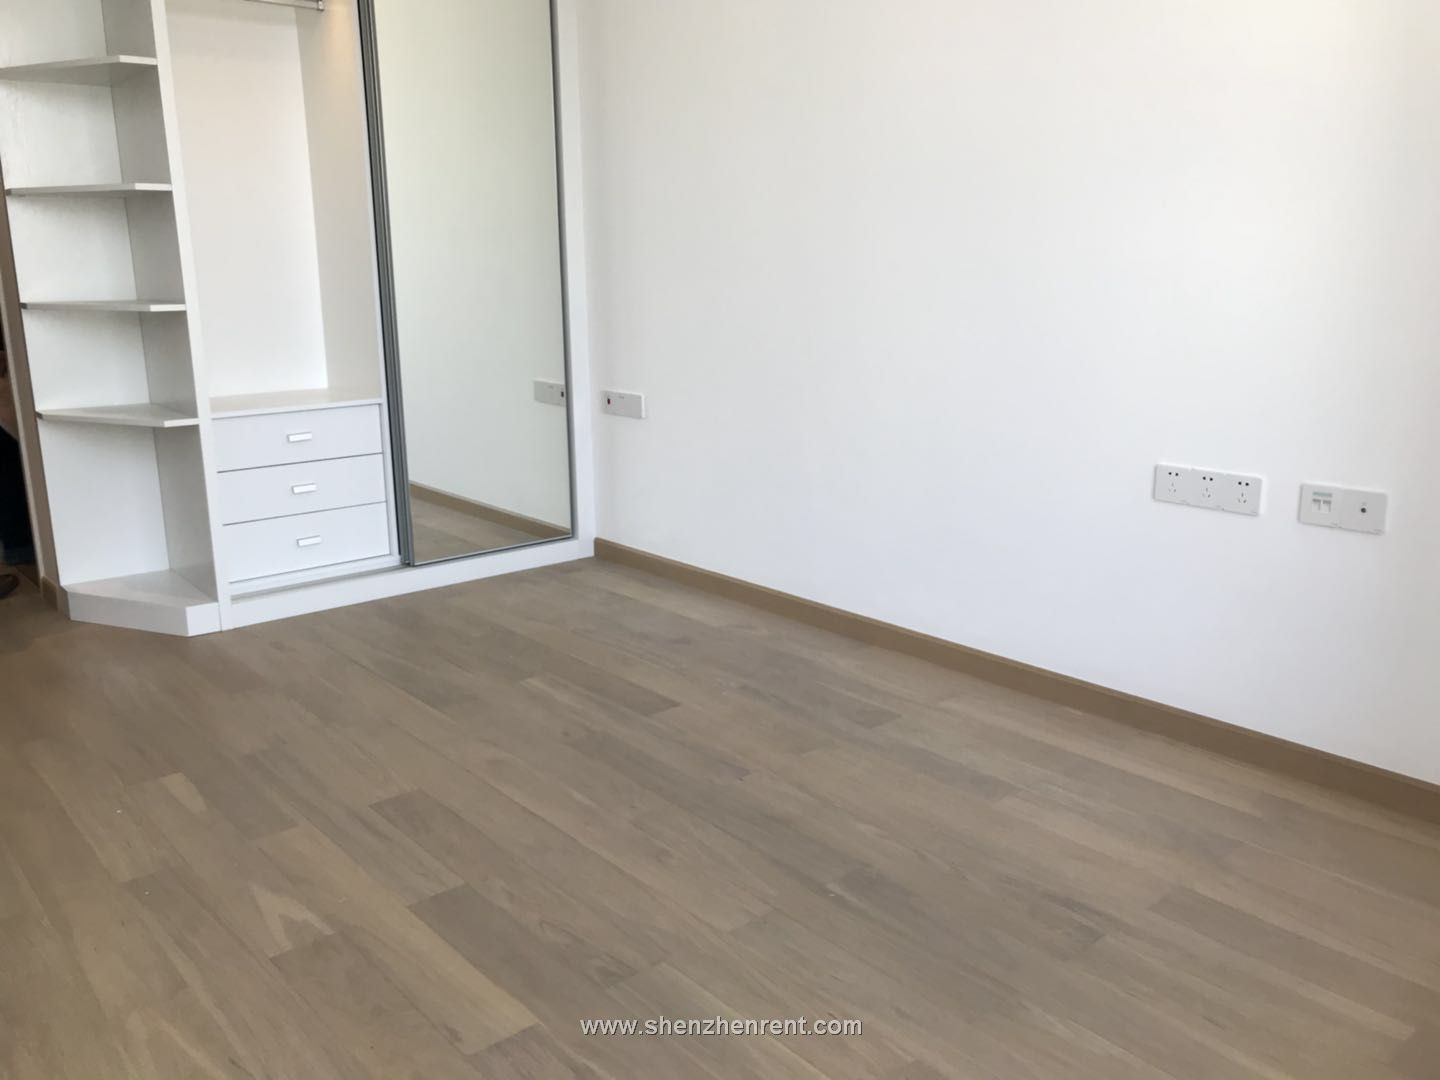 Newly renovated studio in shekou for rent